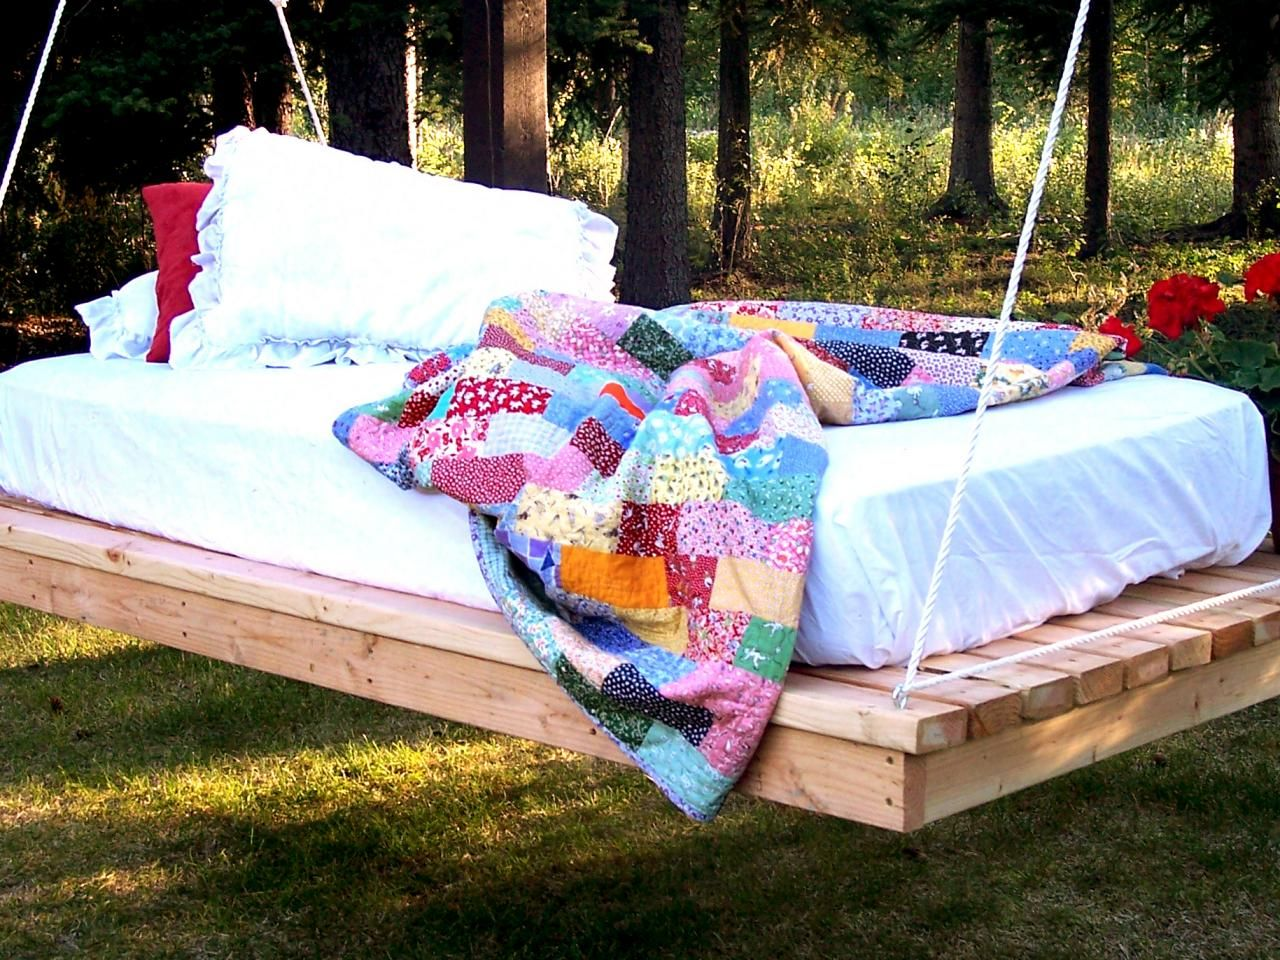 Learn to build your own hanging daybed for outdoor lounging.